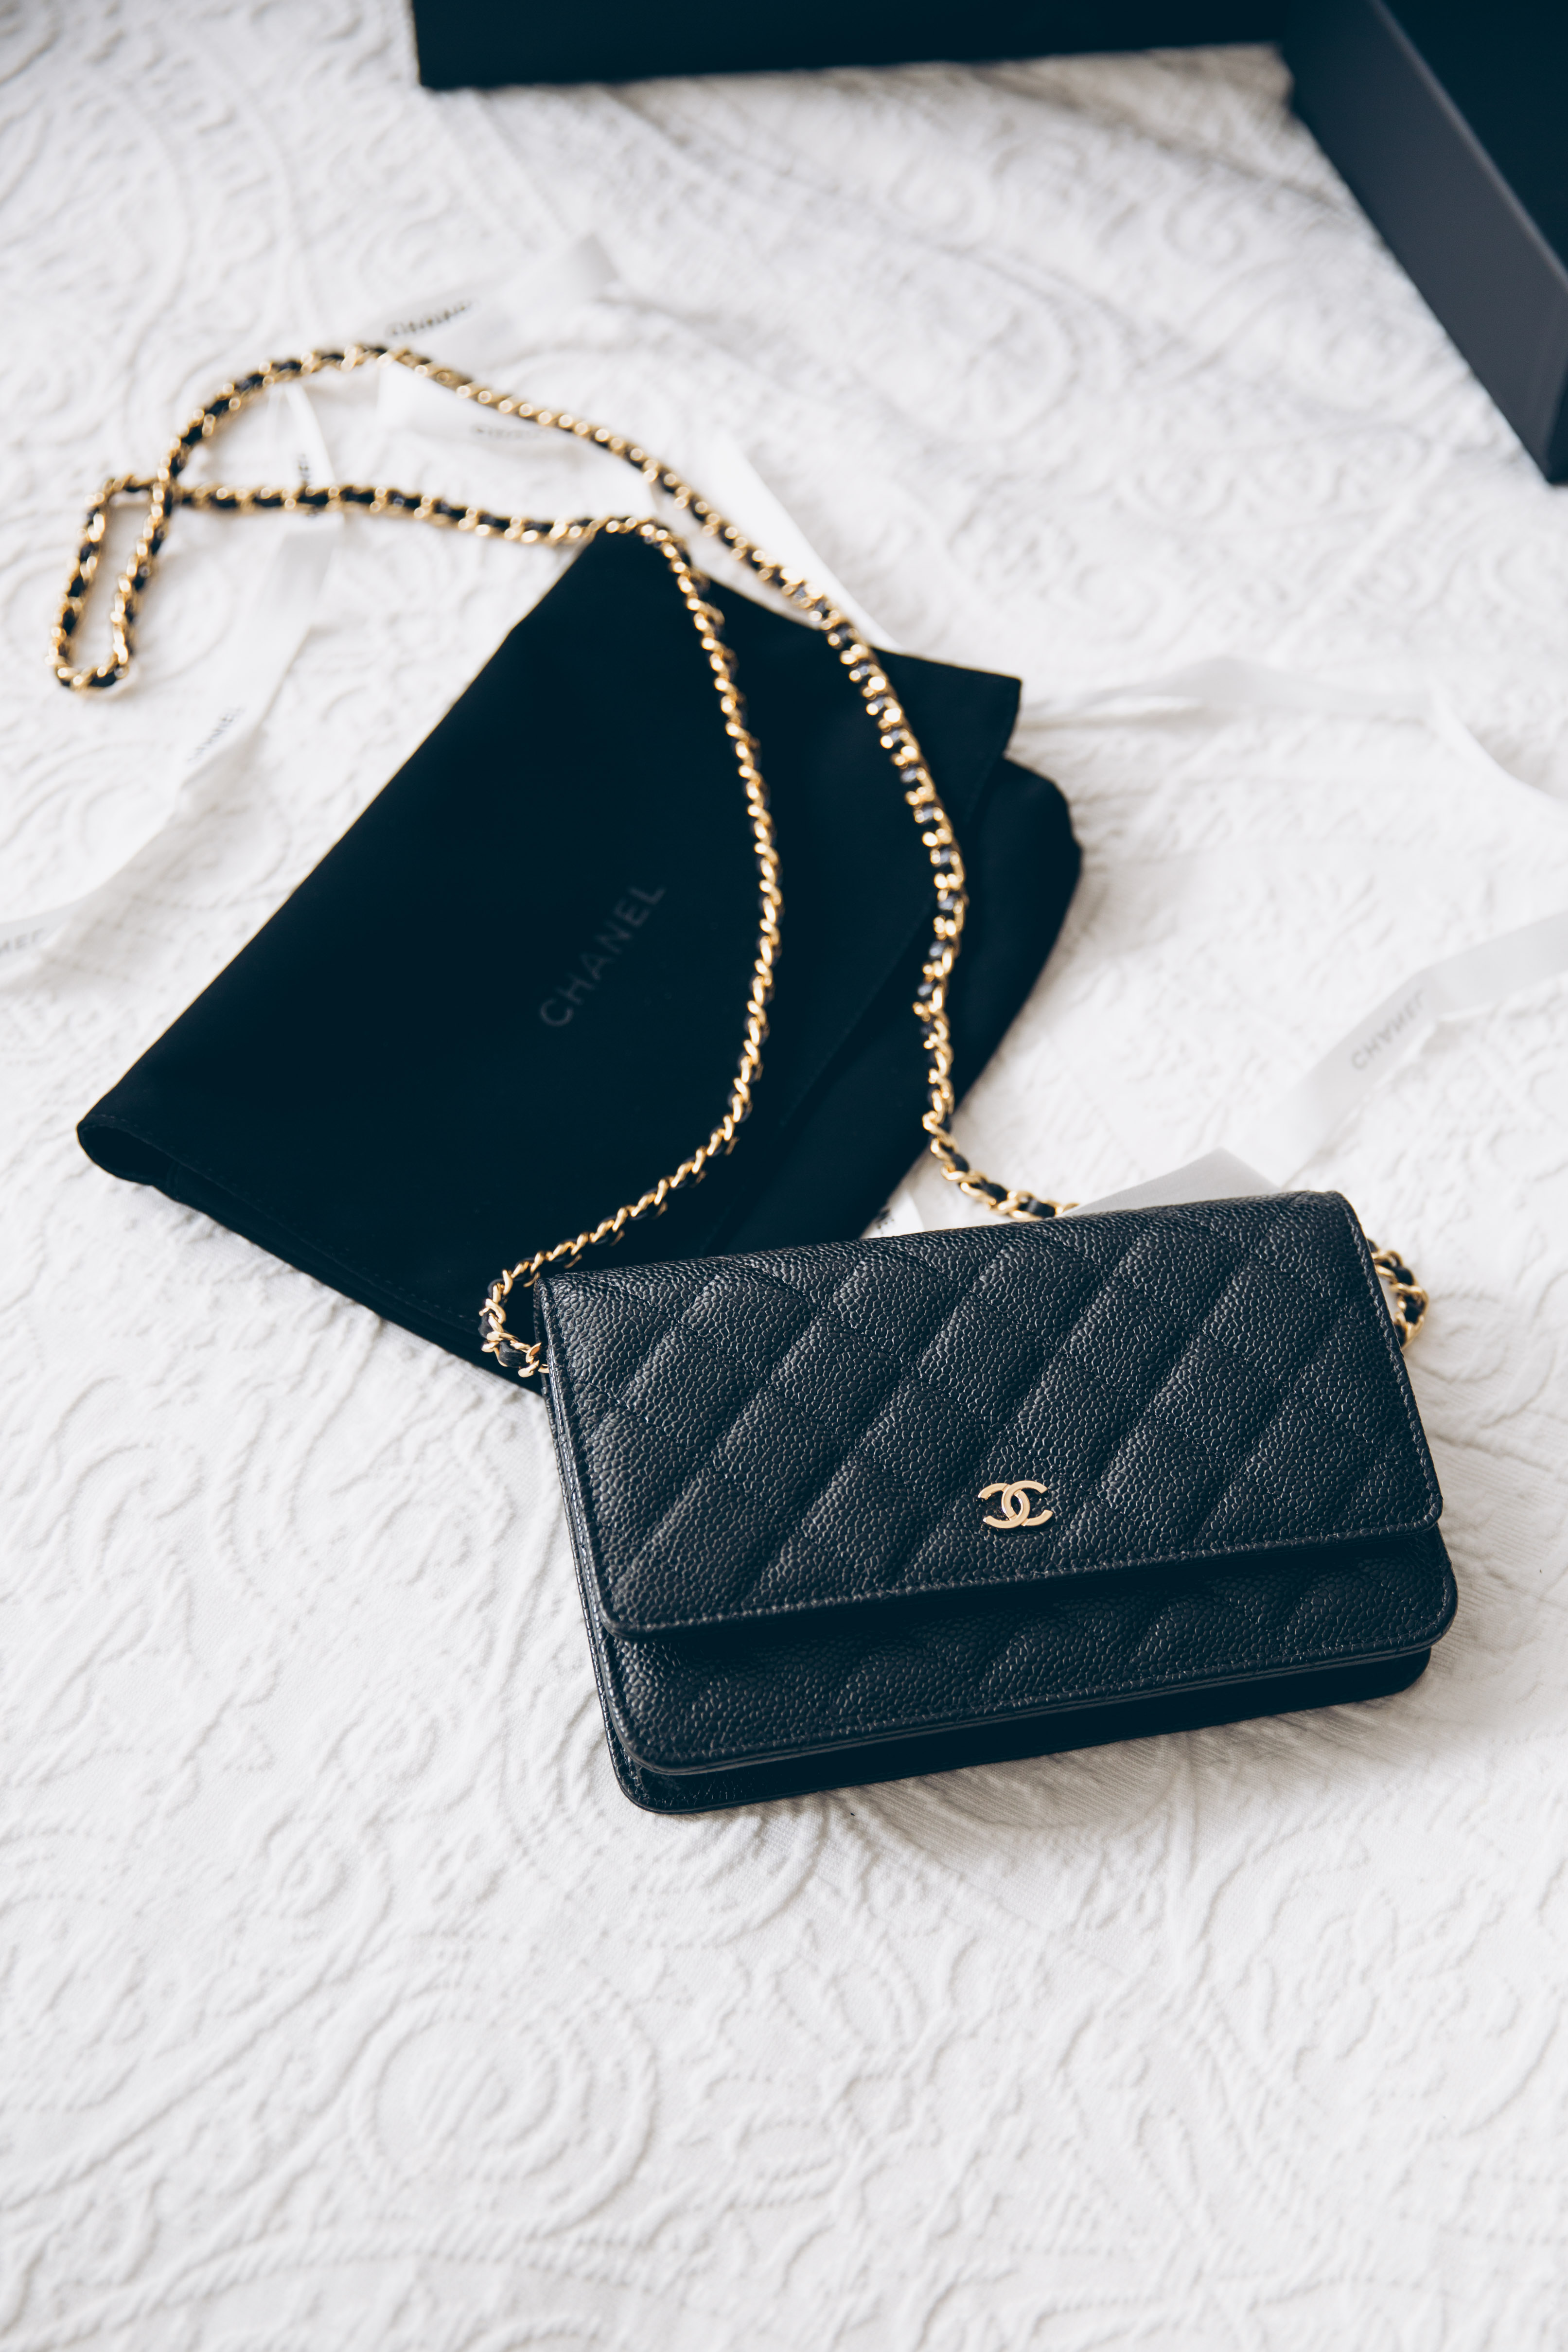 Mini Vs Woc Review Chanel Wallet On Chain Woc You Rock My Life